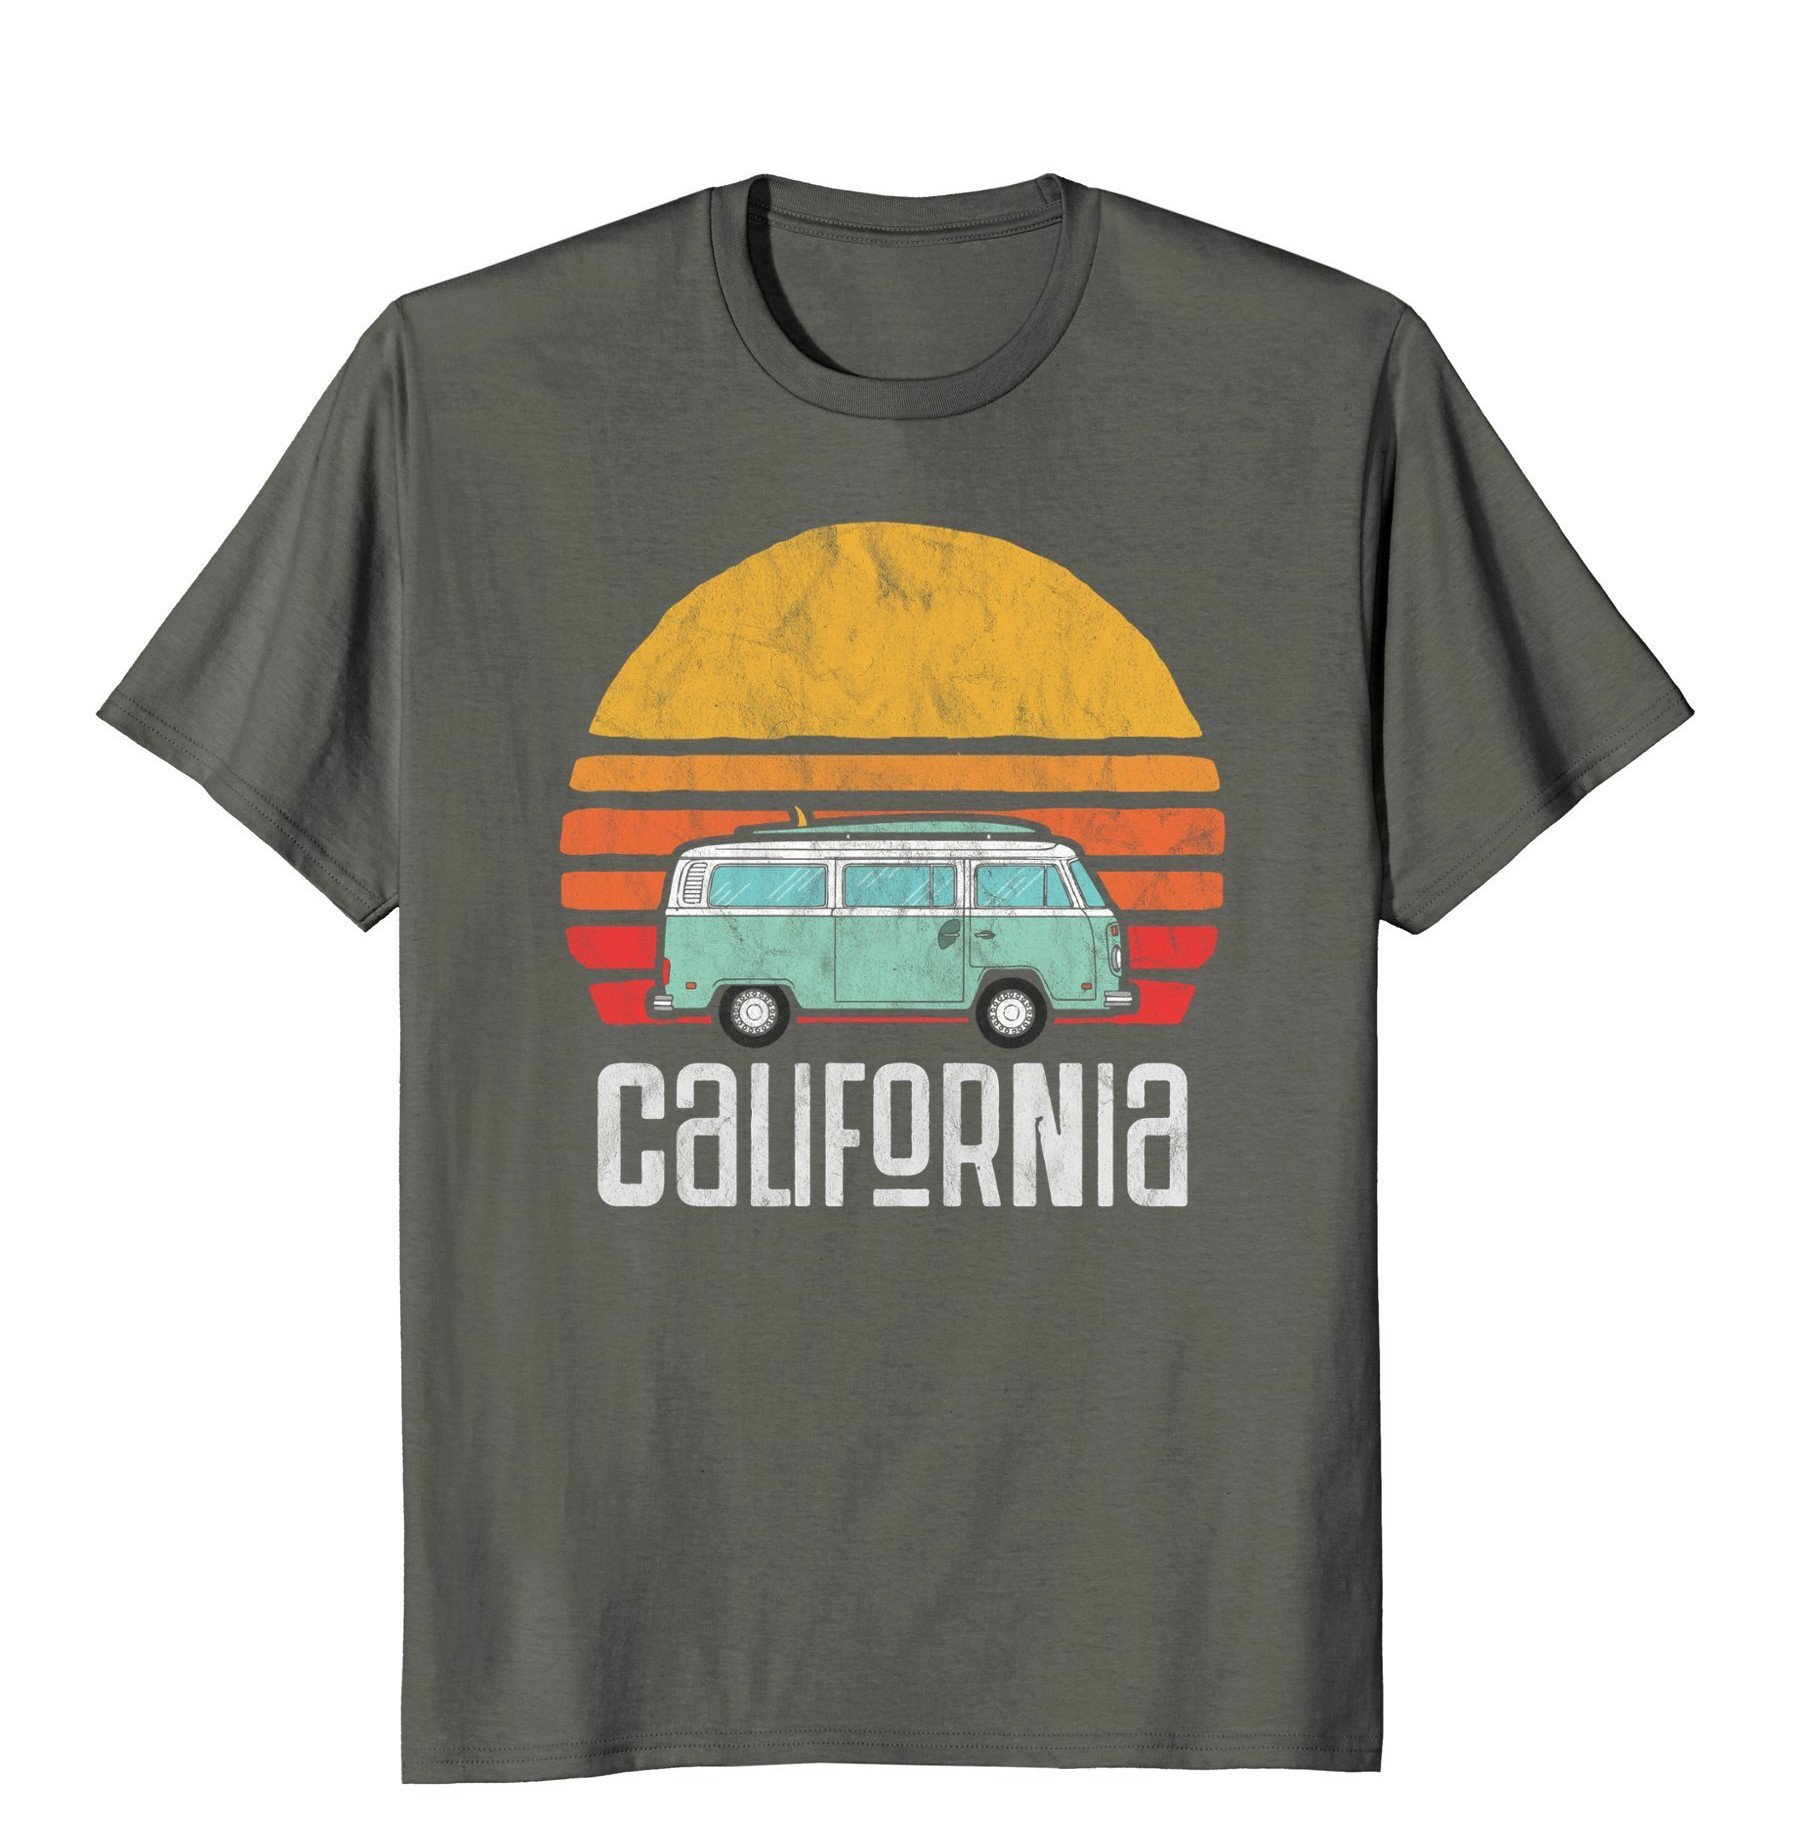 Funny Men T Shirt Women Novelty Tshirt Retro California Hippie Van Beach Bum Surfer T Shirt